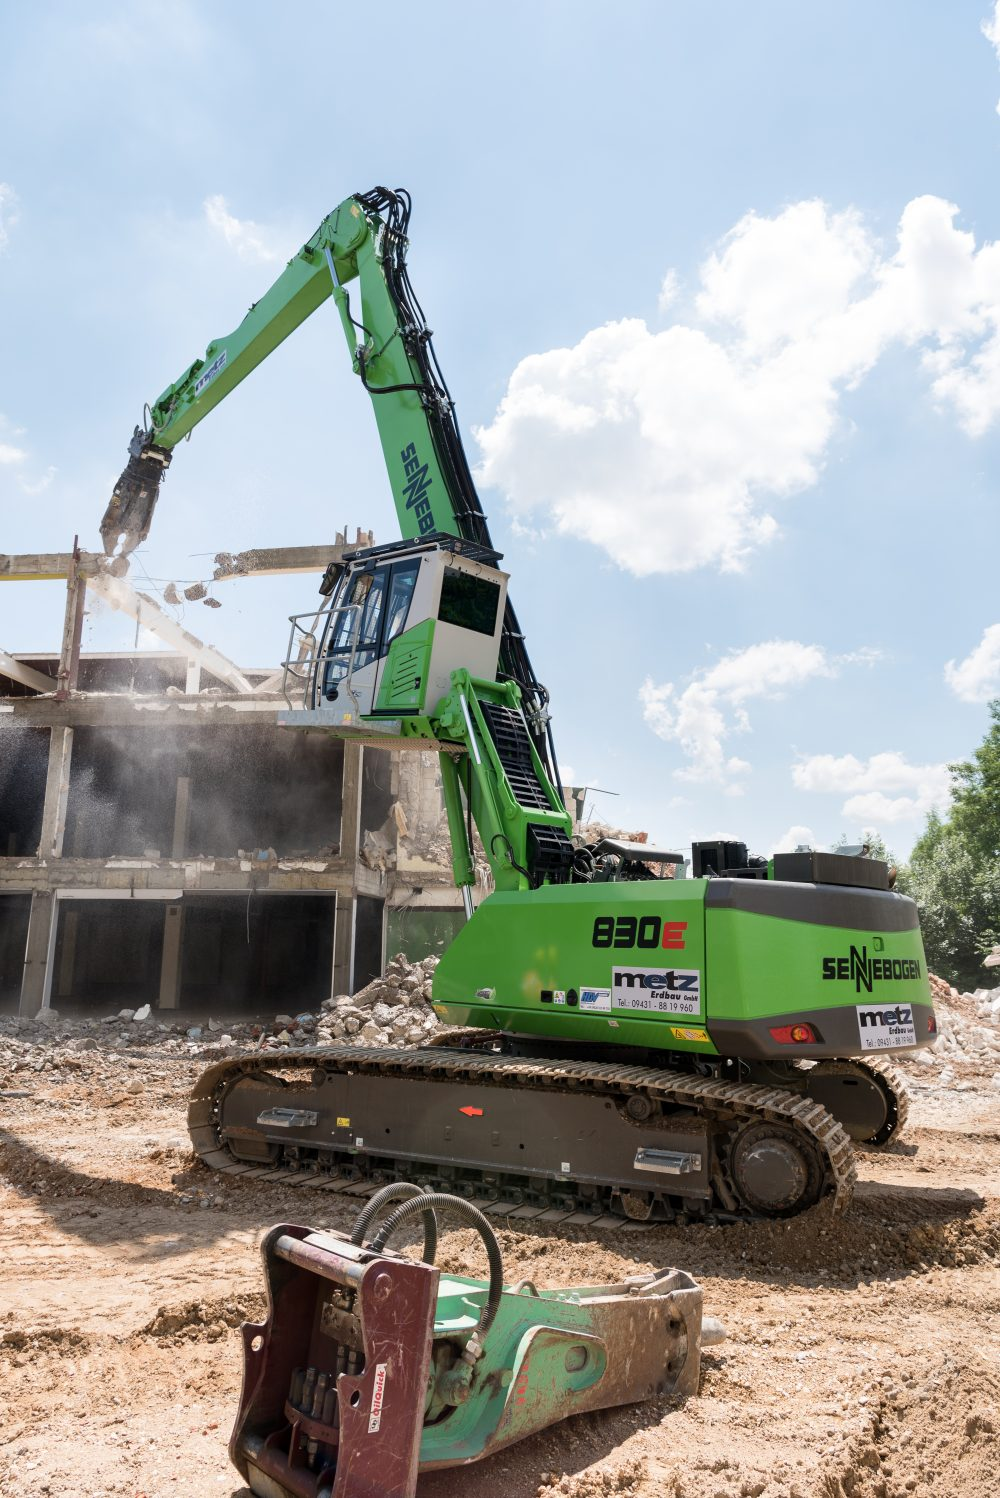 Be it demolition grab, bucket or shears, the flexibility of the demolition 830 from SENNEBOGEN's E-series is impressive